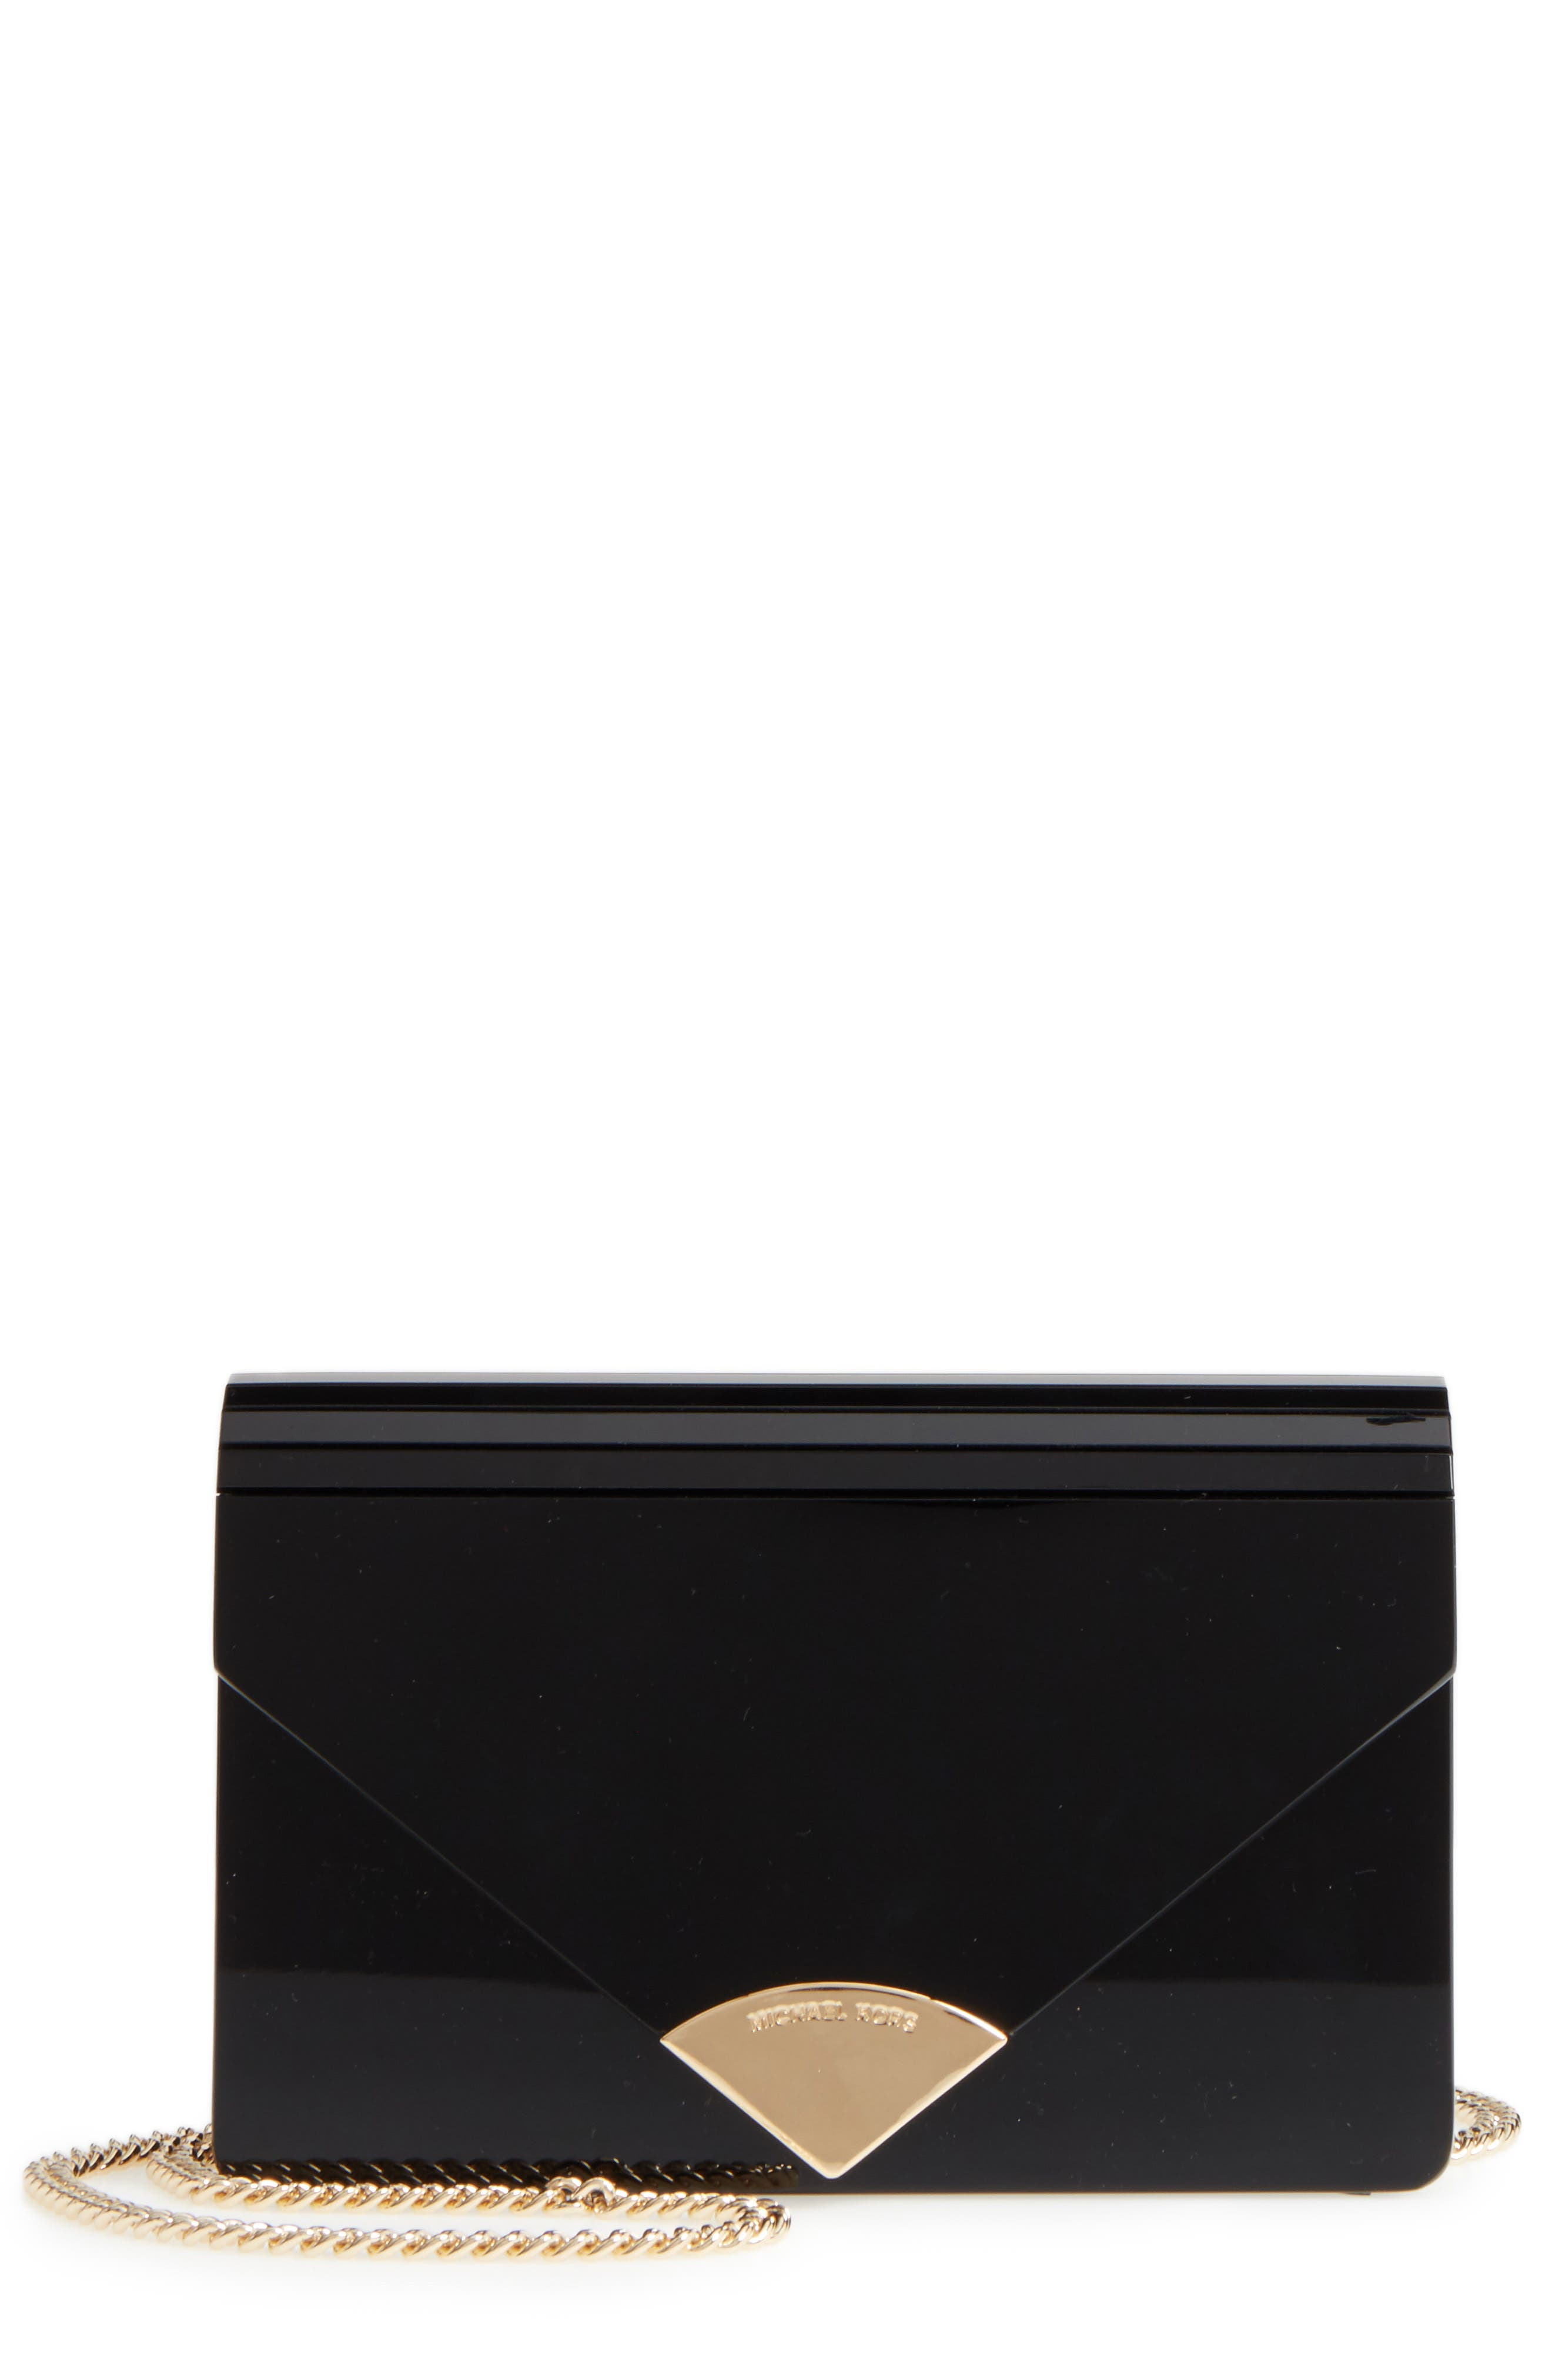 Michael Kors Medium Barbara Resin Envelope Clutch